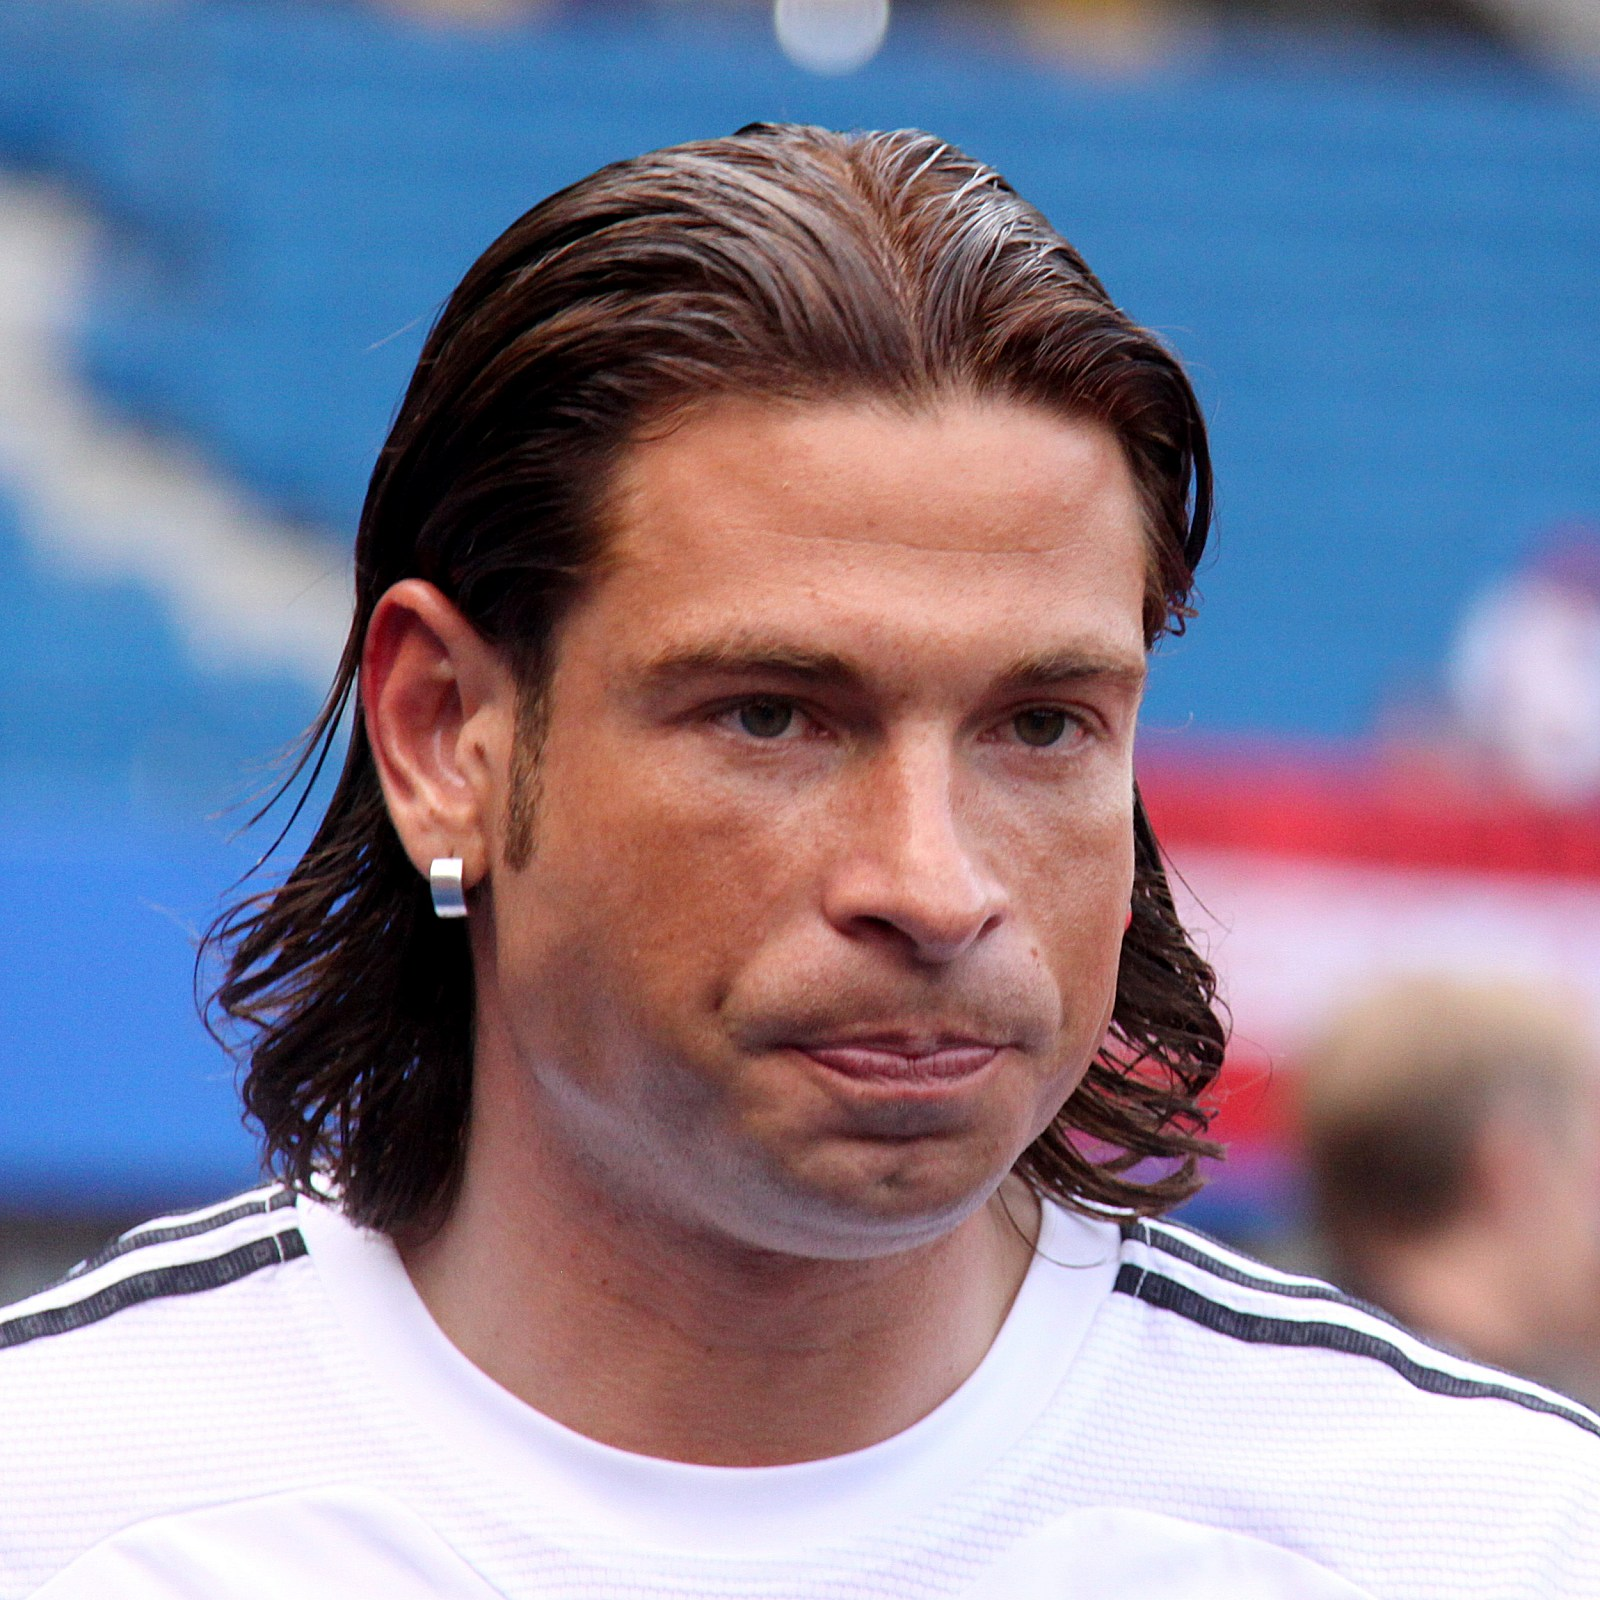 The 36-year old son of father Frank and mother(?) Tim Wiese in 2018 photo. Tim Wiese earned a  million dollar salary - leaving the net worth at 0.5 million in 2018